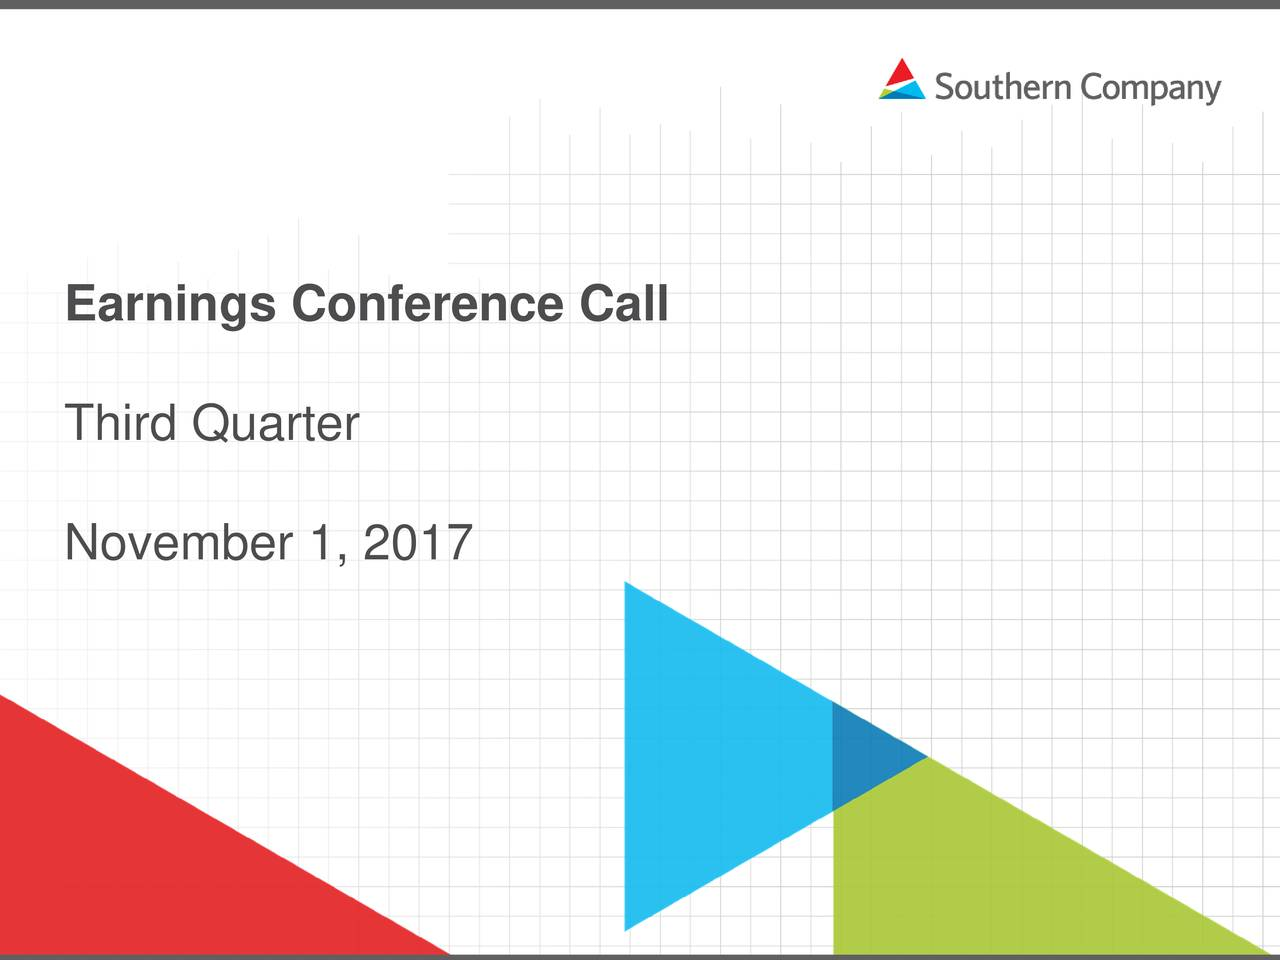 Earnings Call Slides: Southern Company 2017 Q3